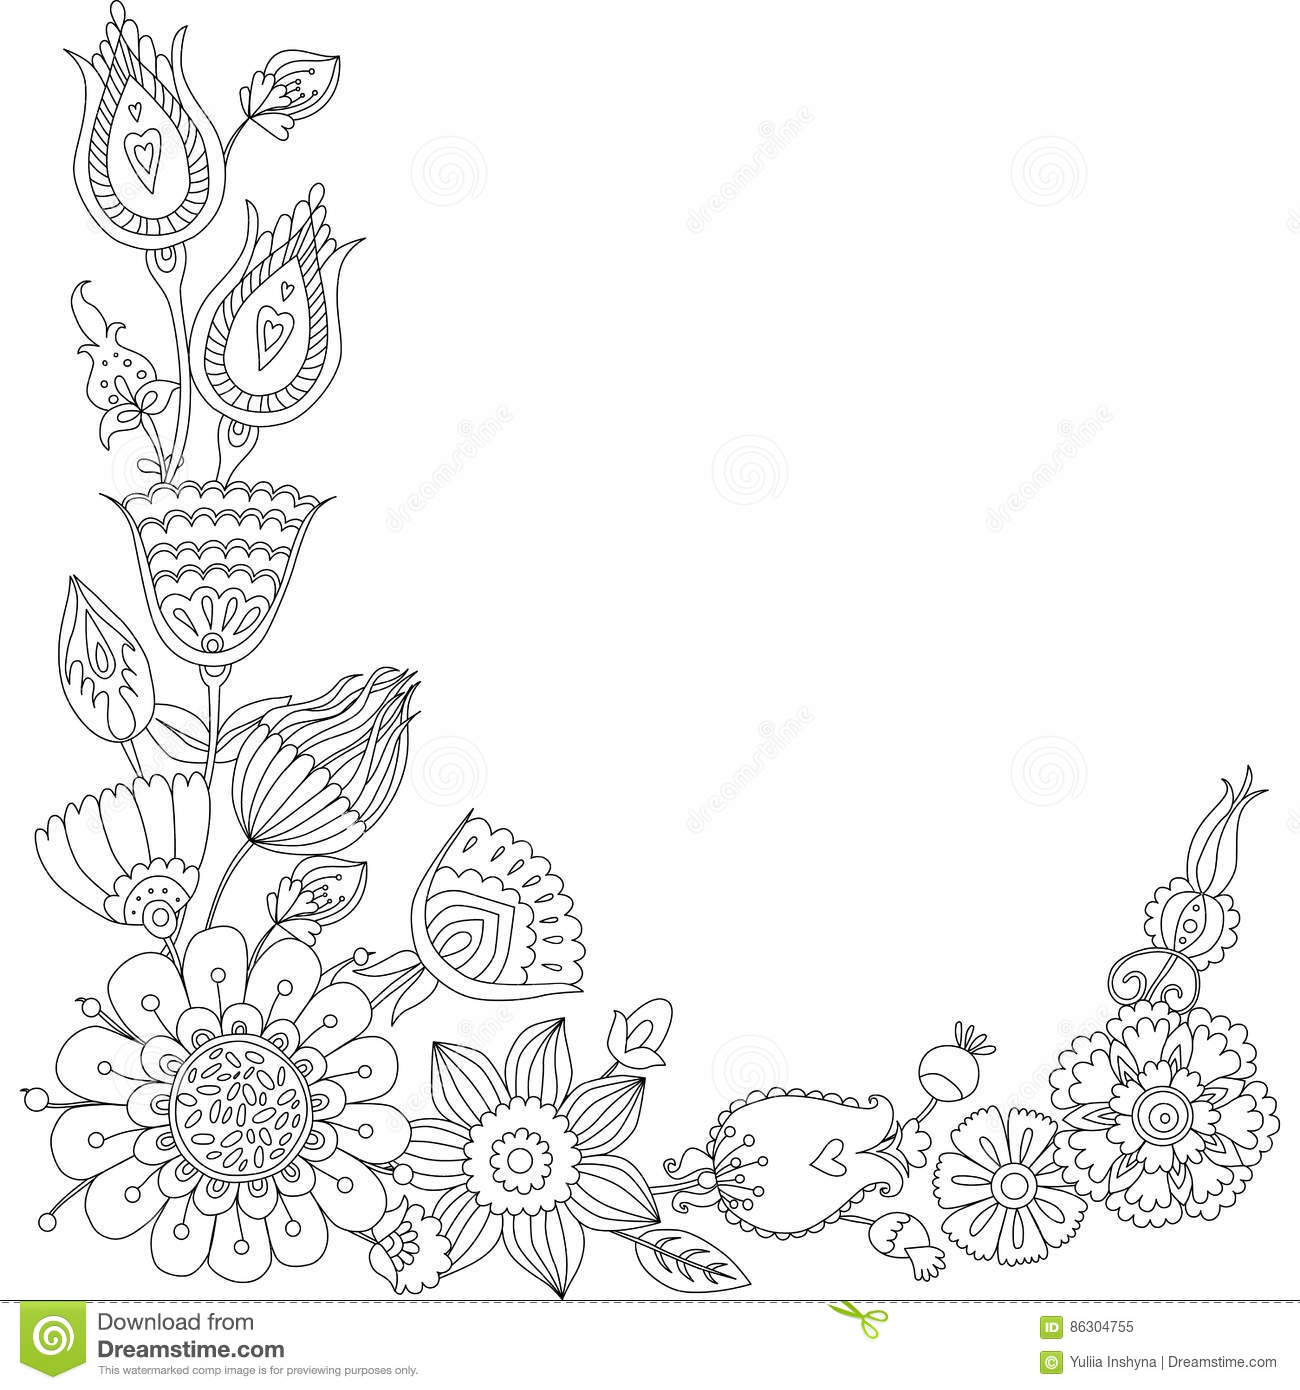 Doodle Floral Greeting Card Black And White Floral Frame Stock